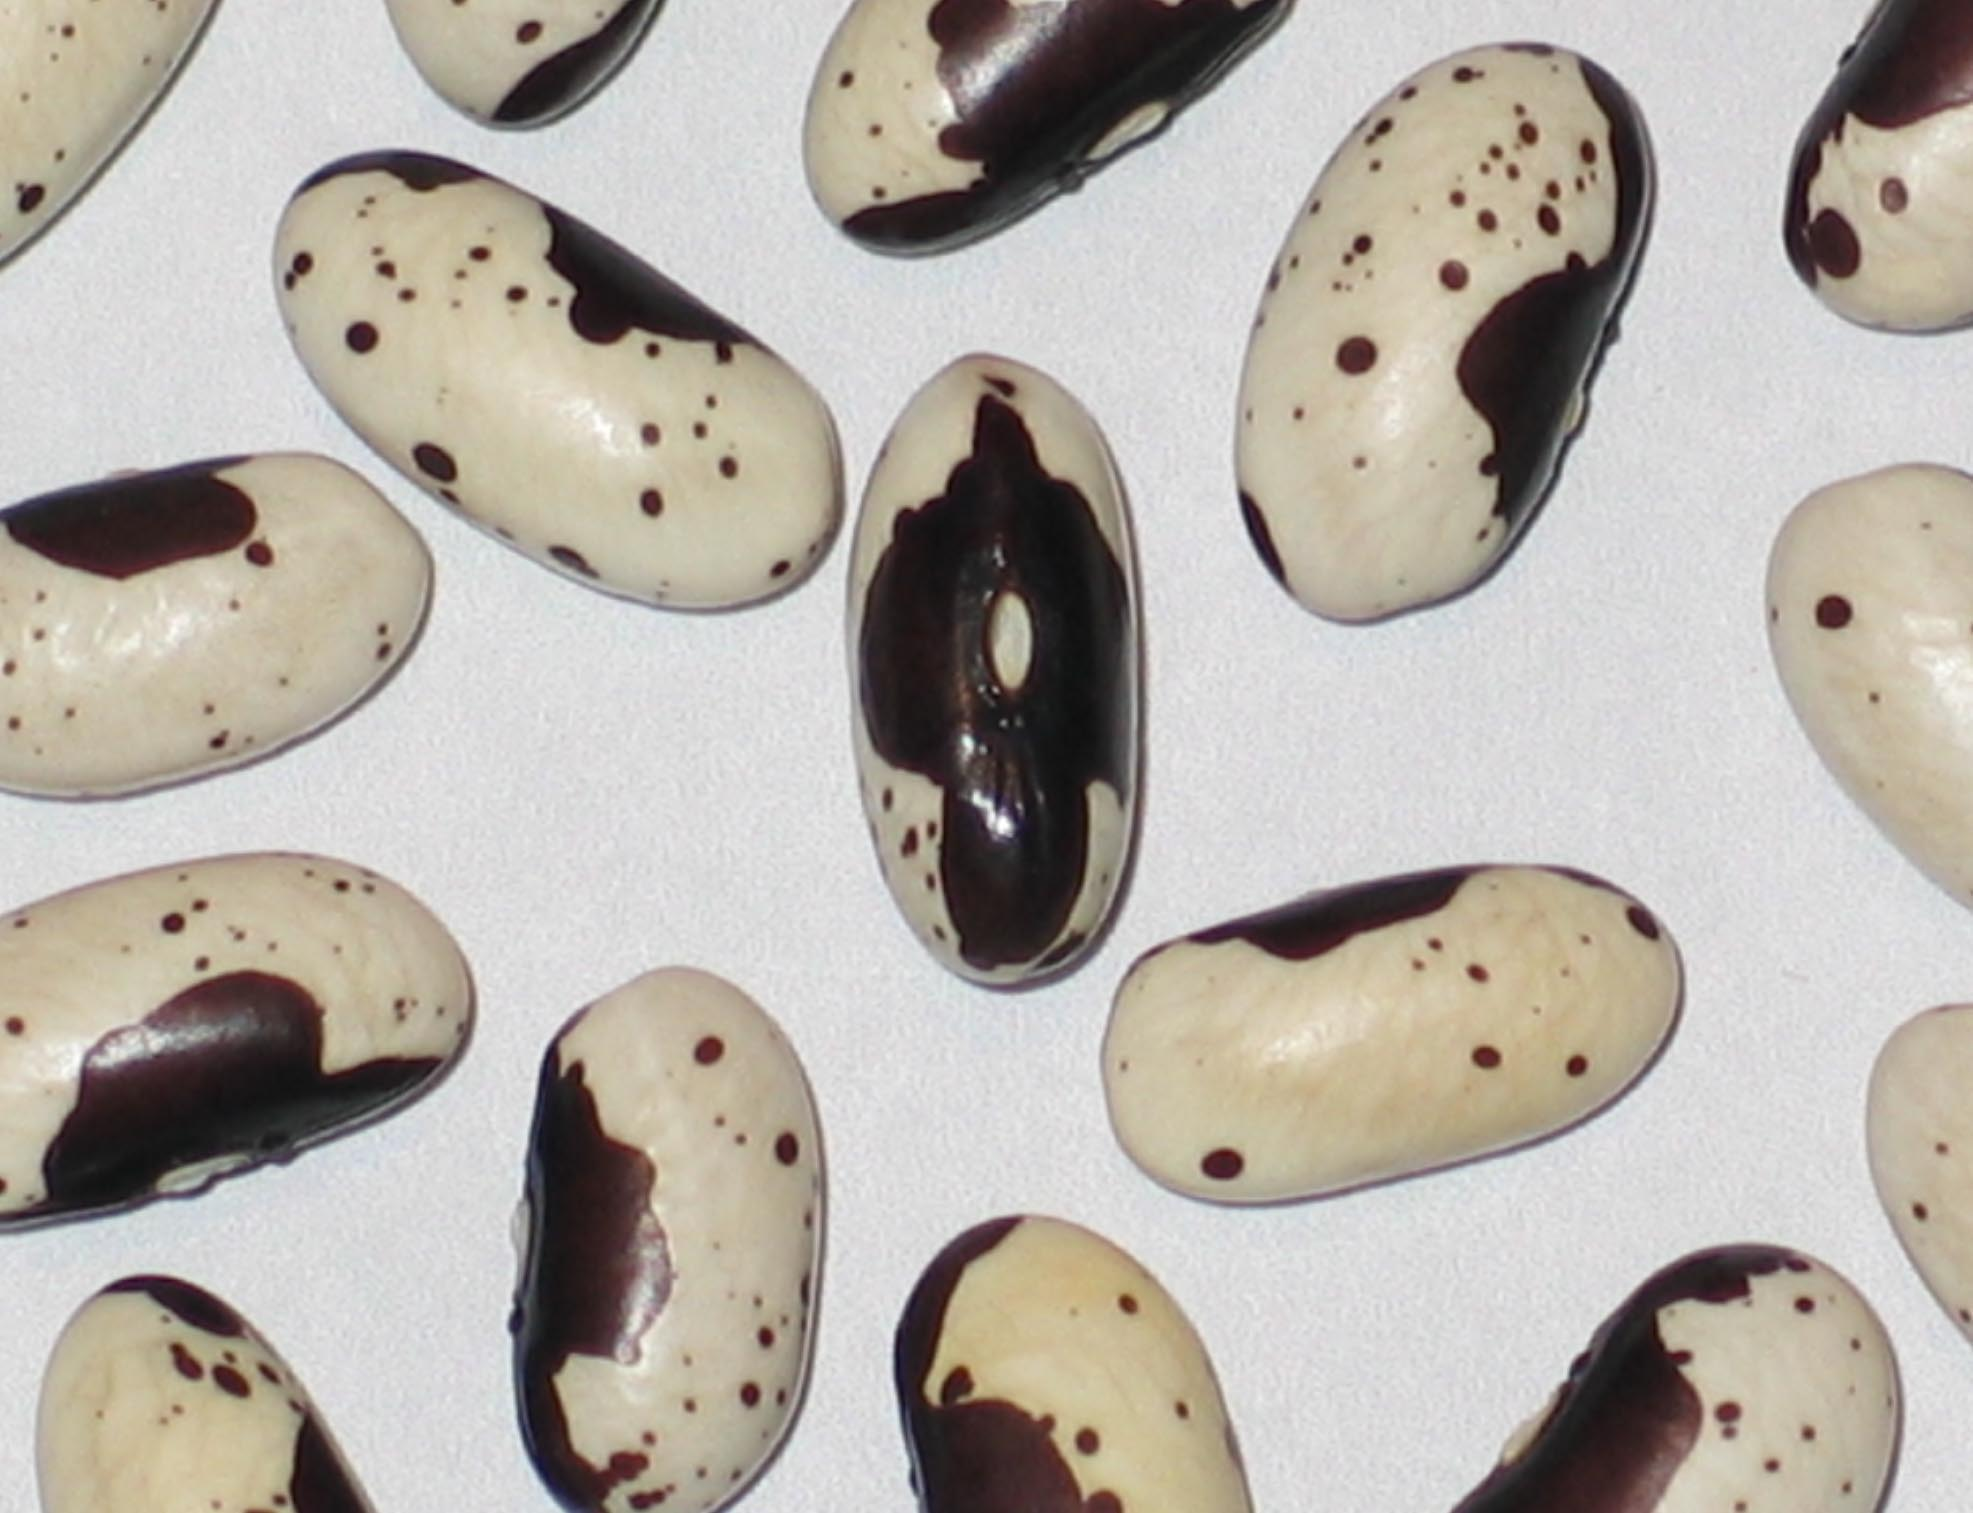 image of Marico beans